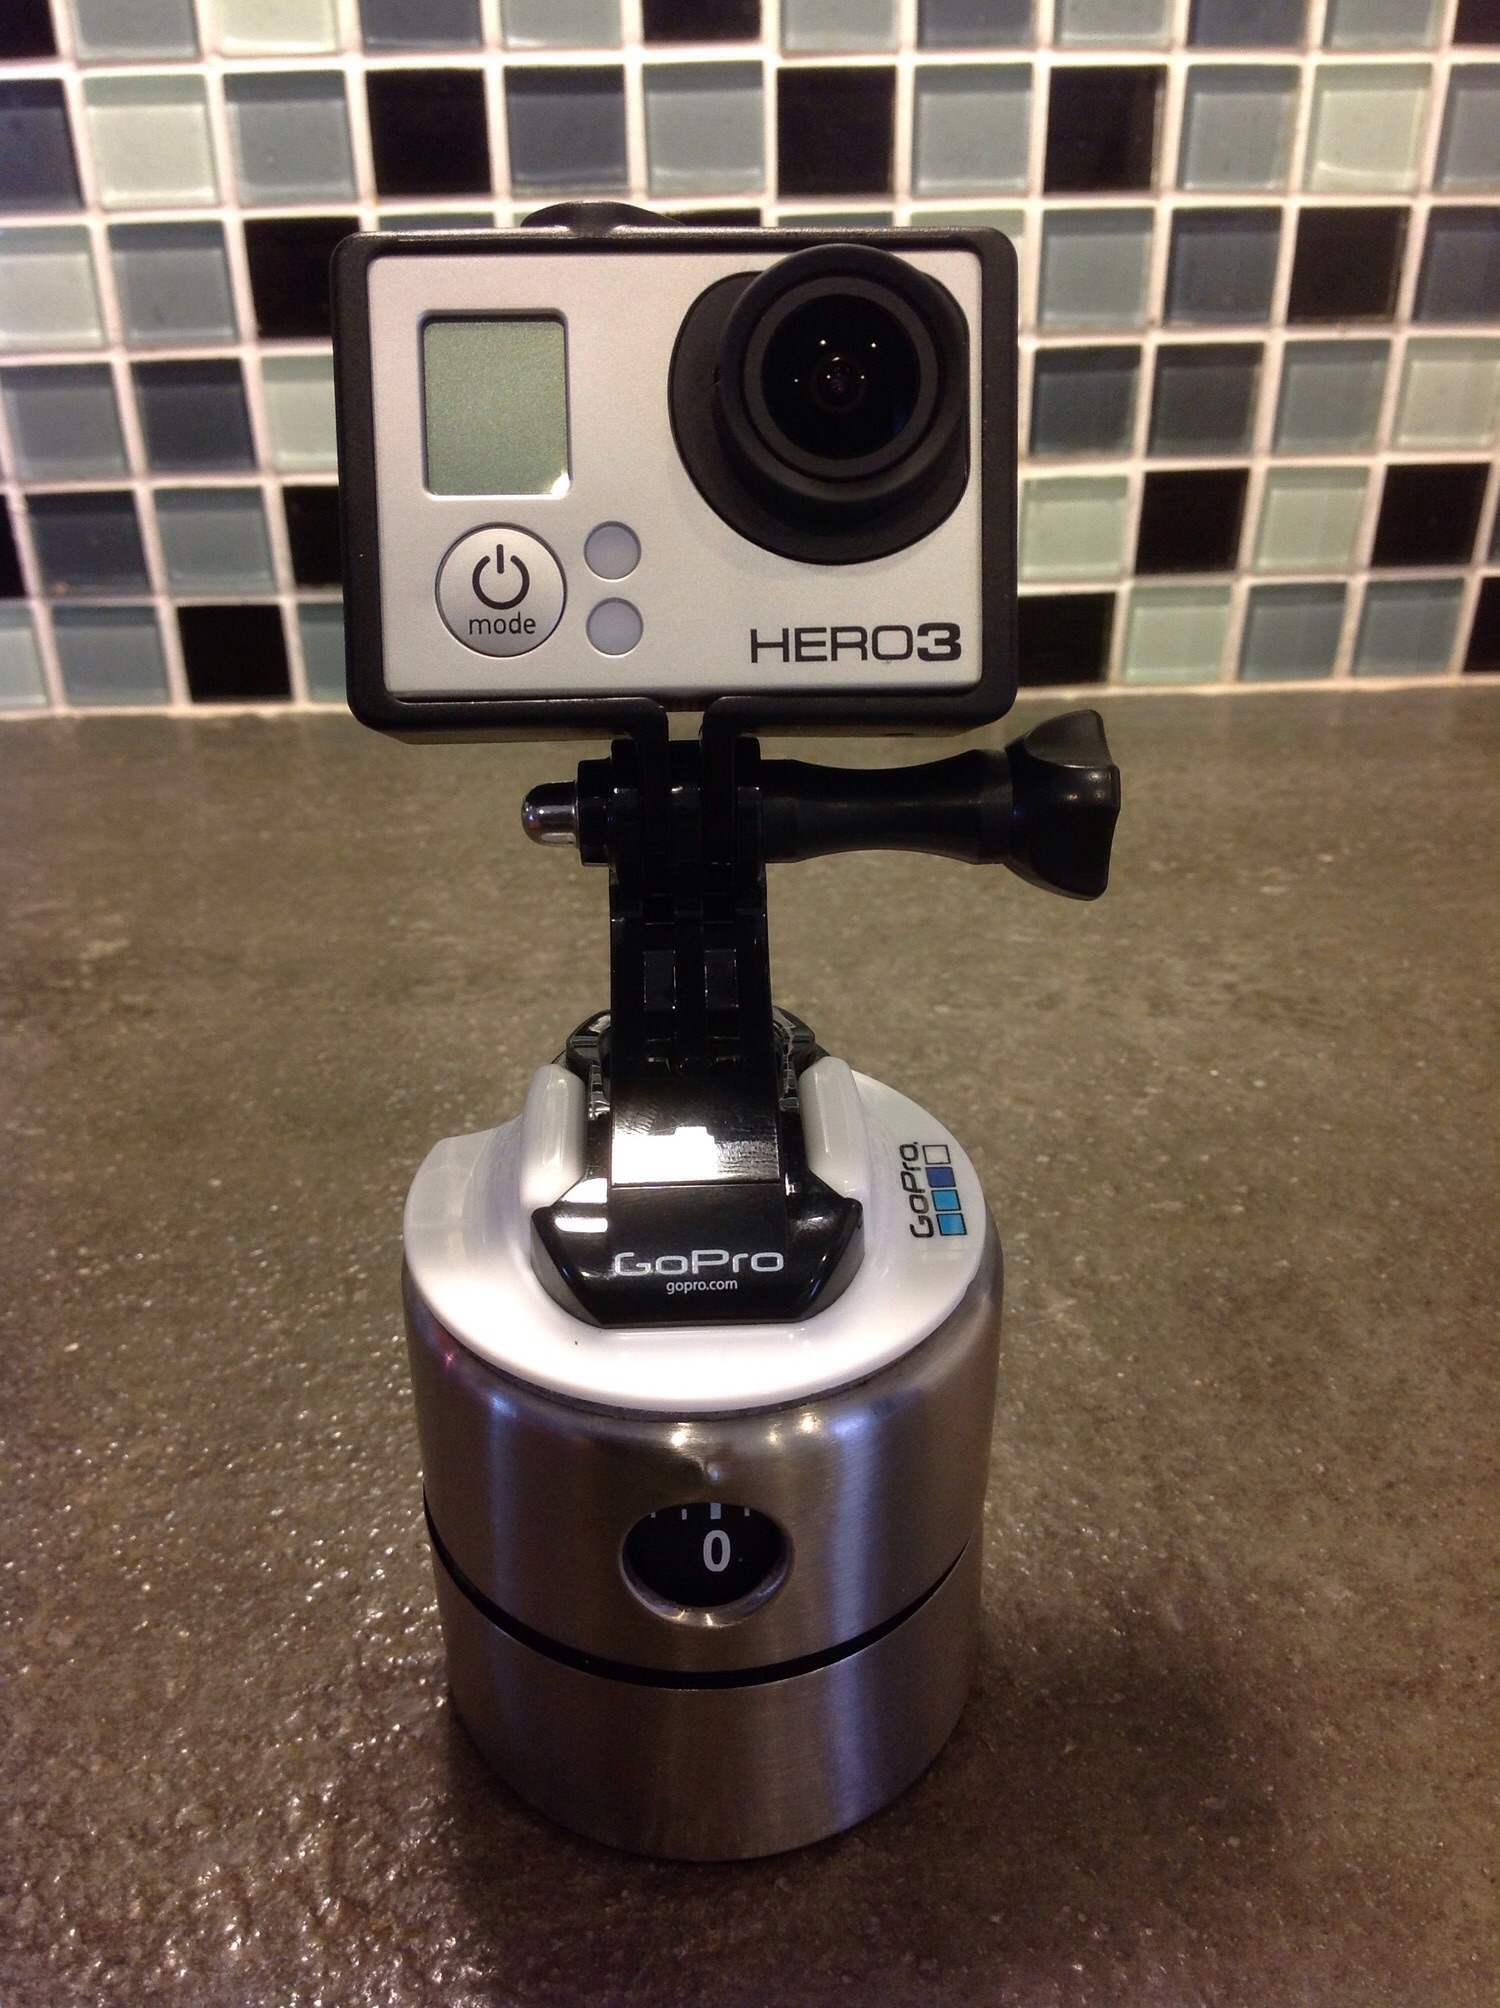 Here is a fun little mount for GoPro that will make your time-lapses better!